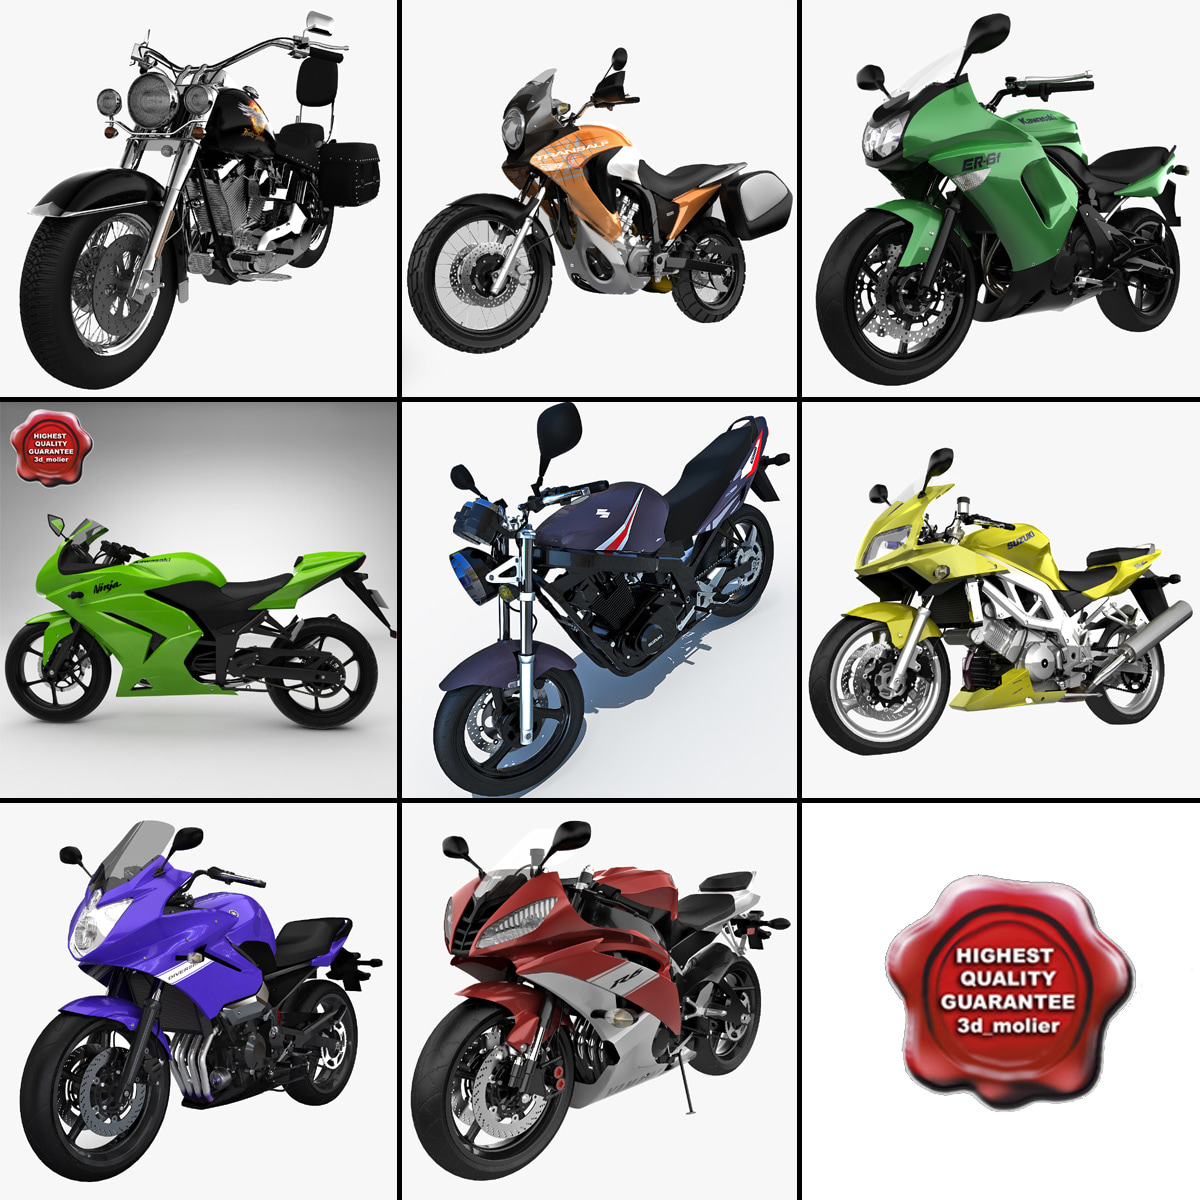 Moto Collection 13 copy.jpg